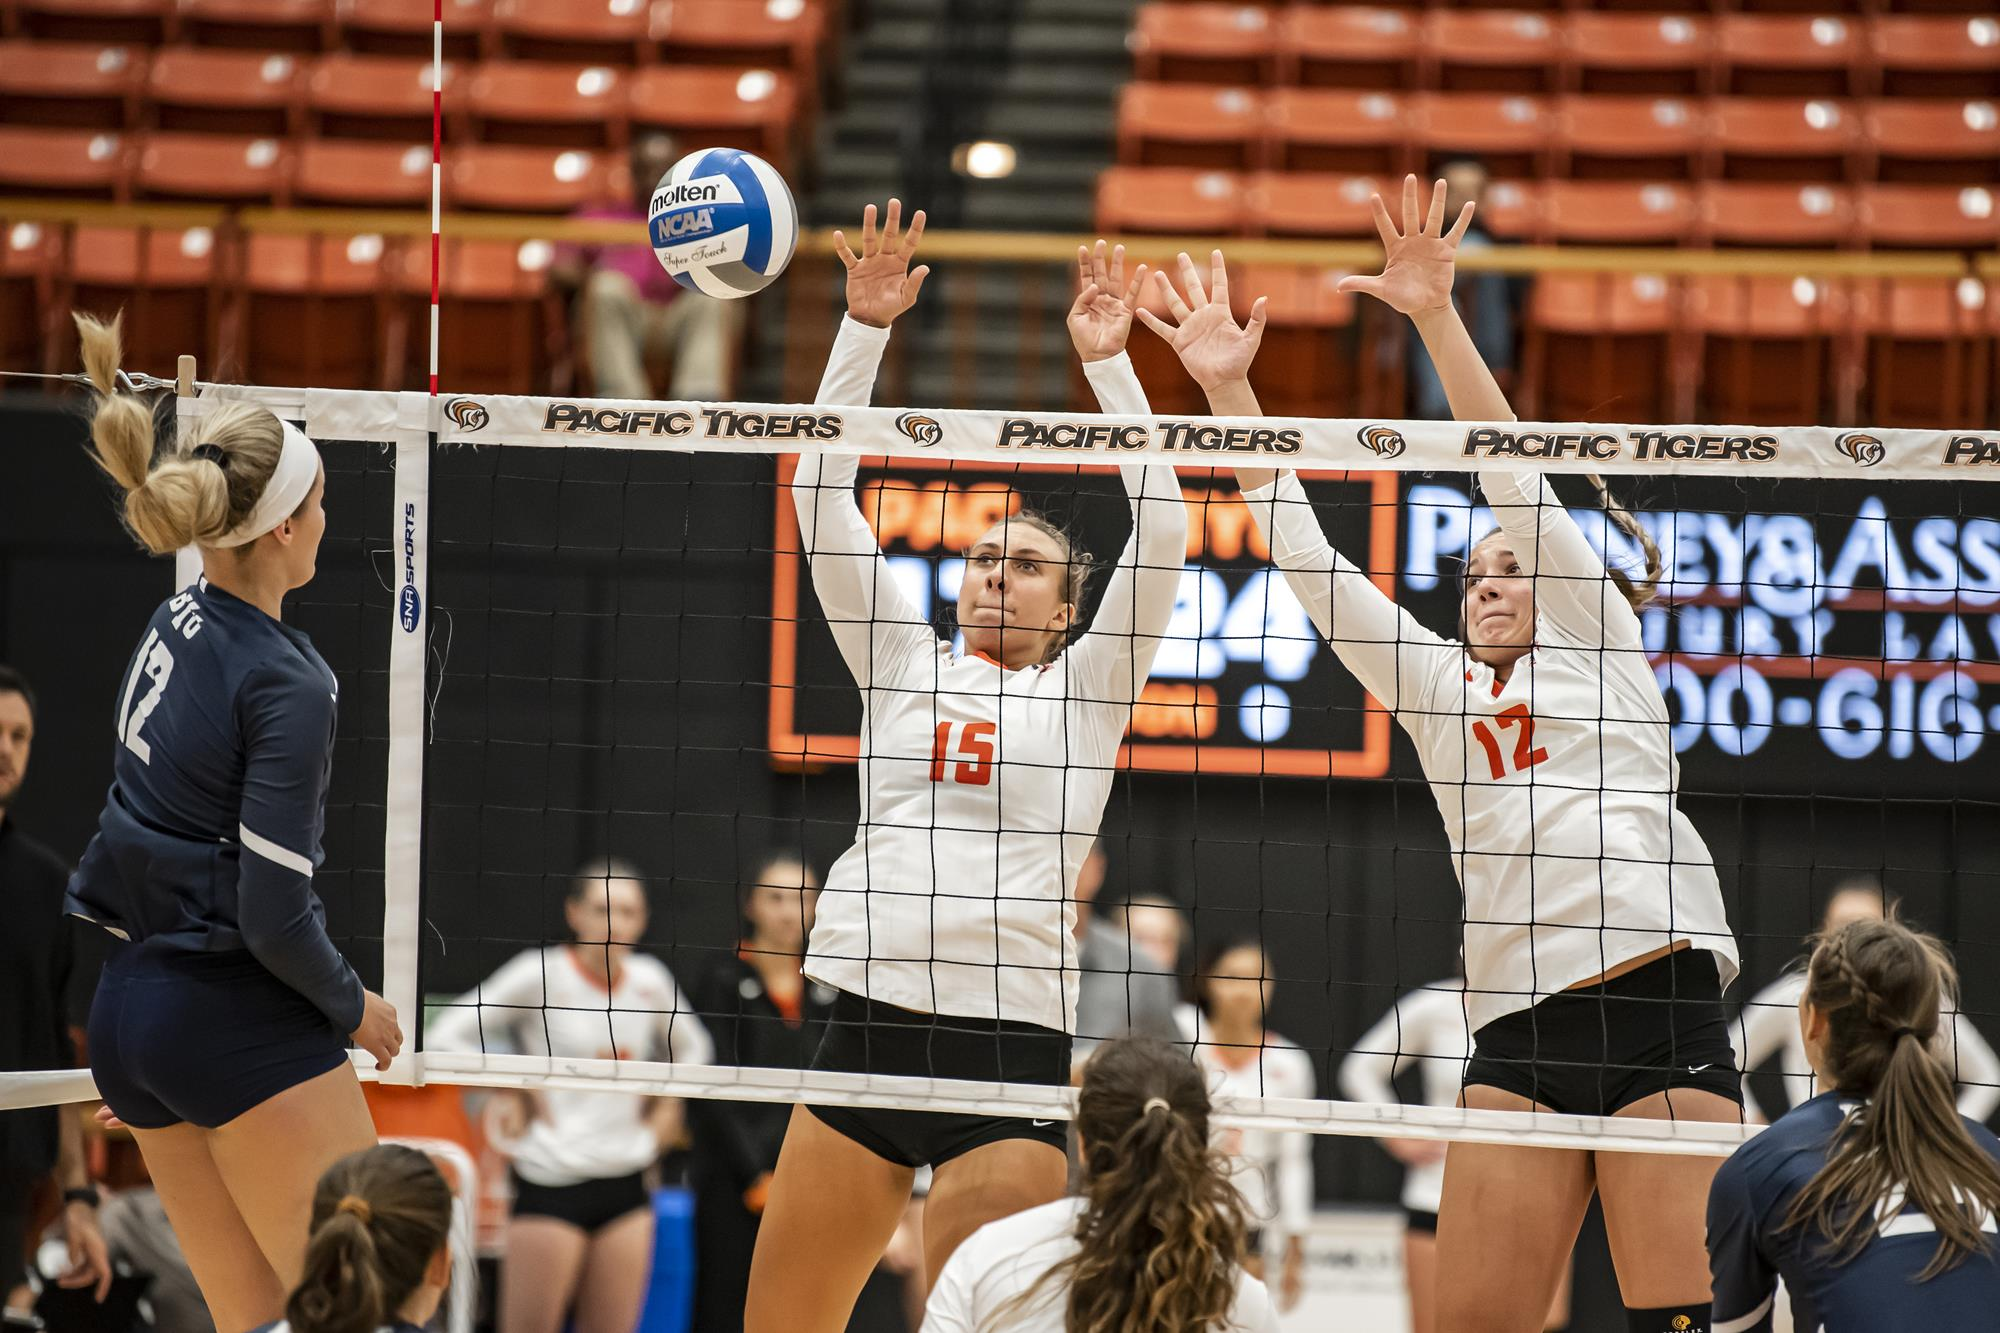 Kennedy Kaminsky 2020 Women S Volleyball University Of The Pacific